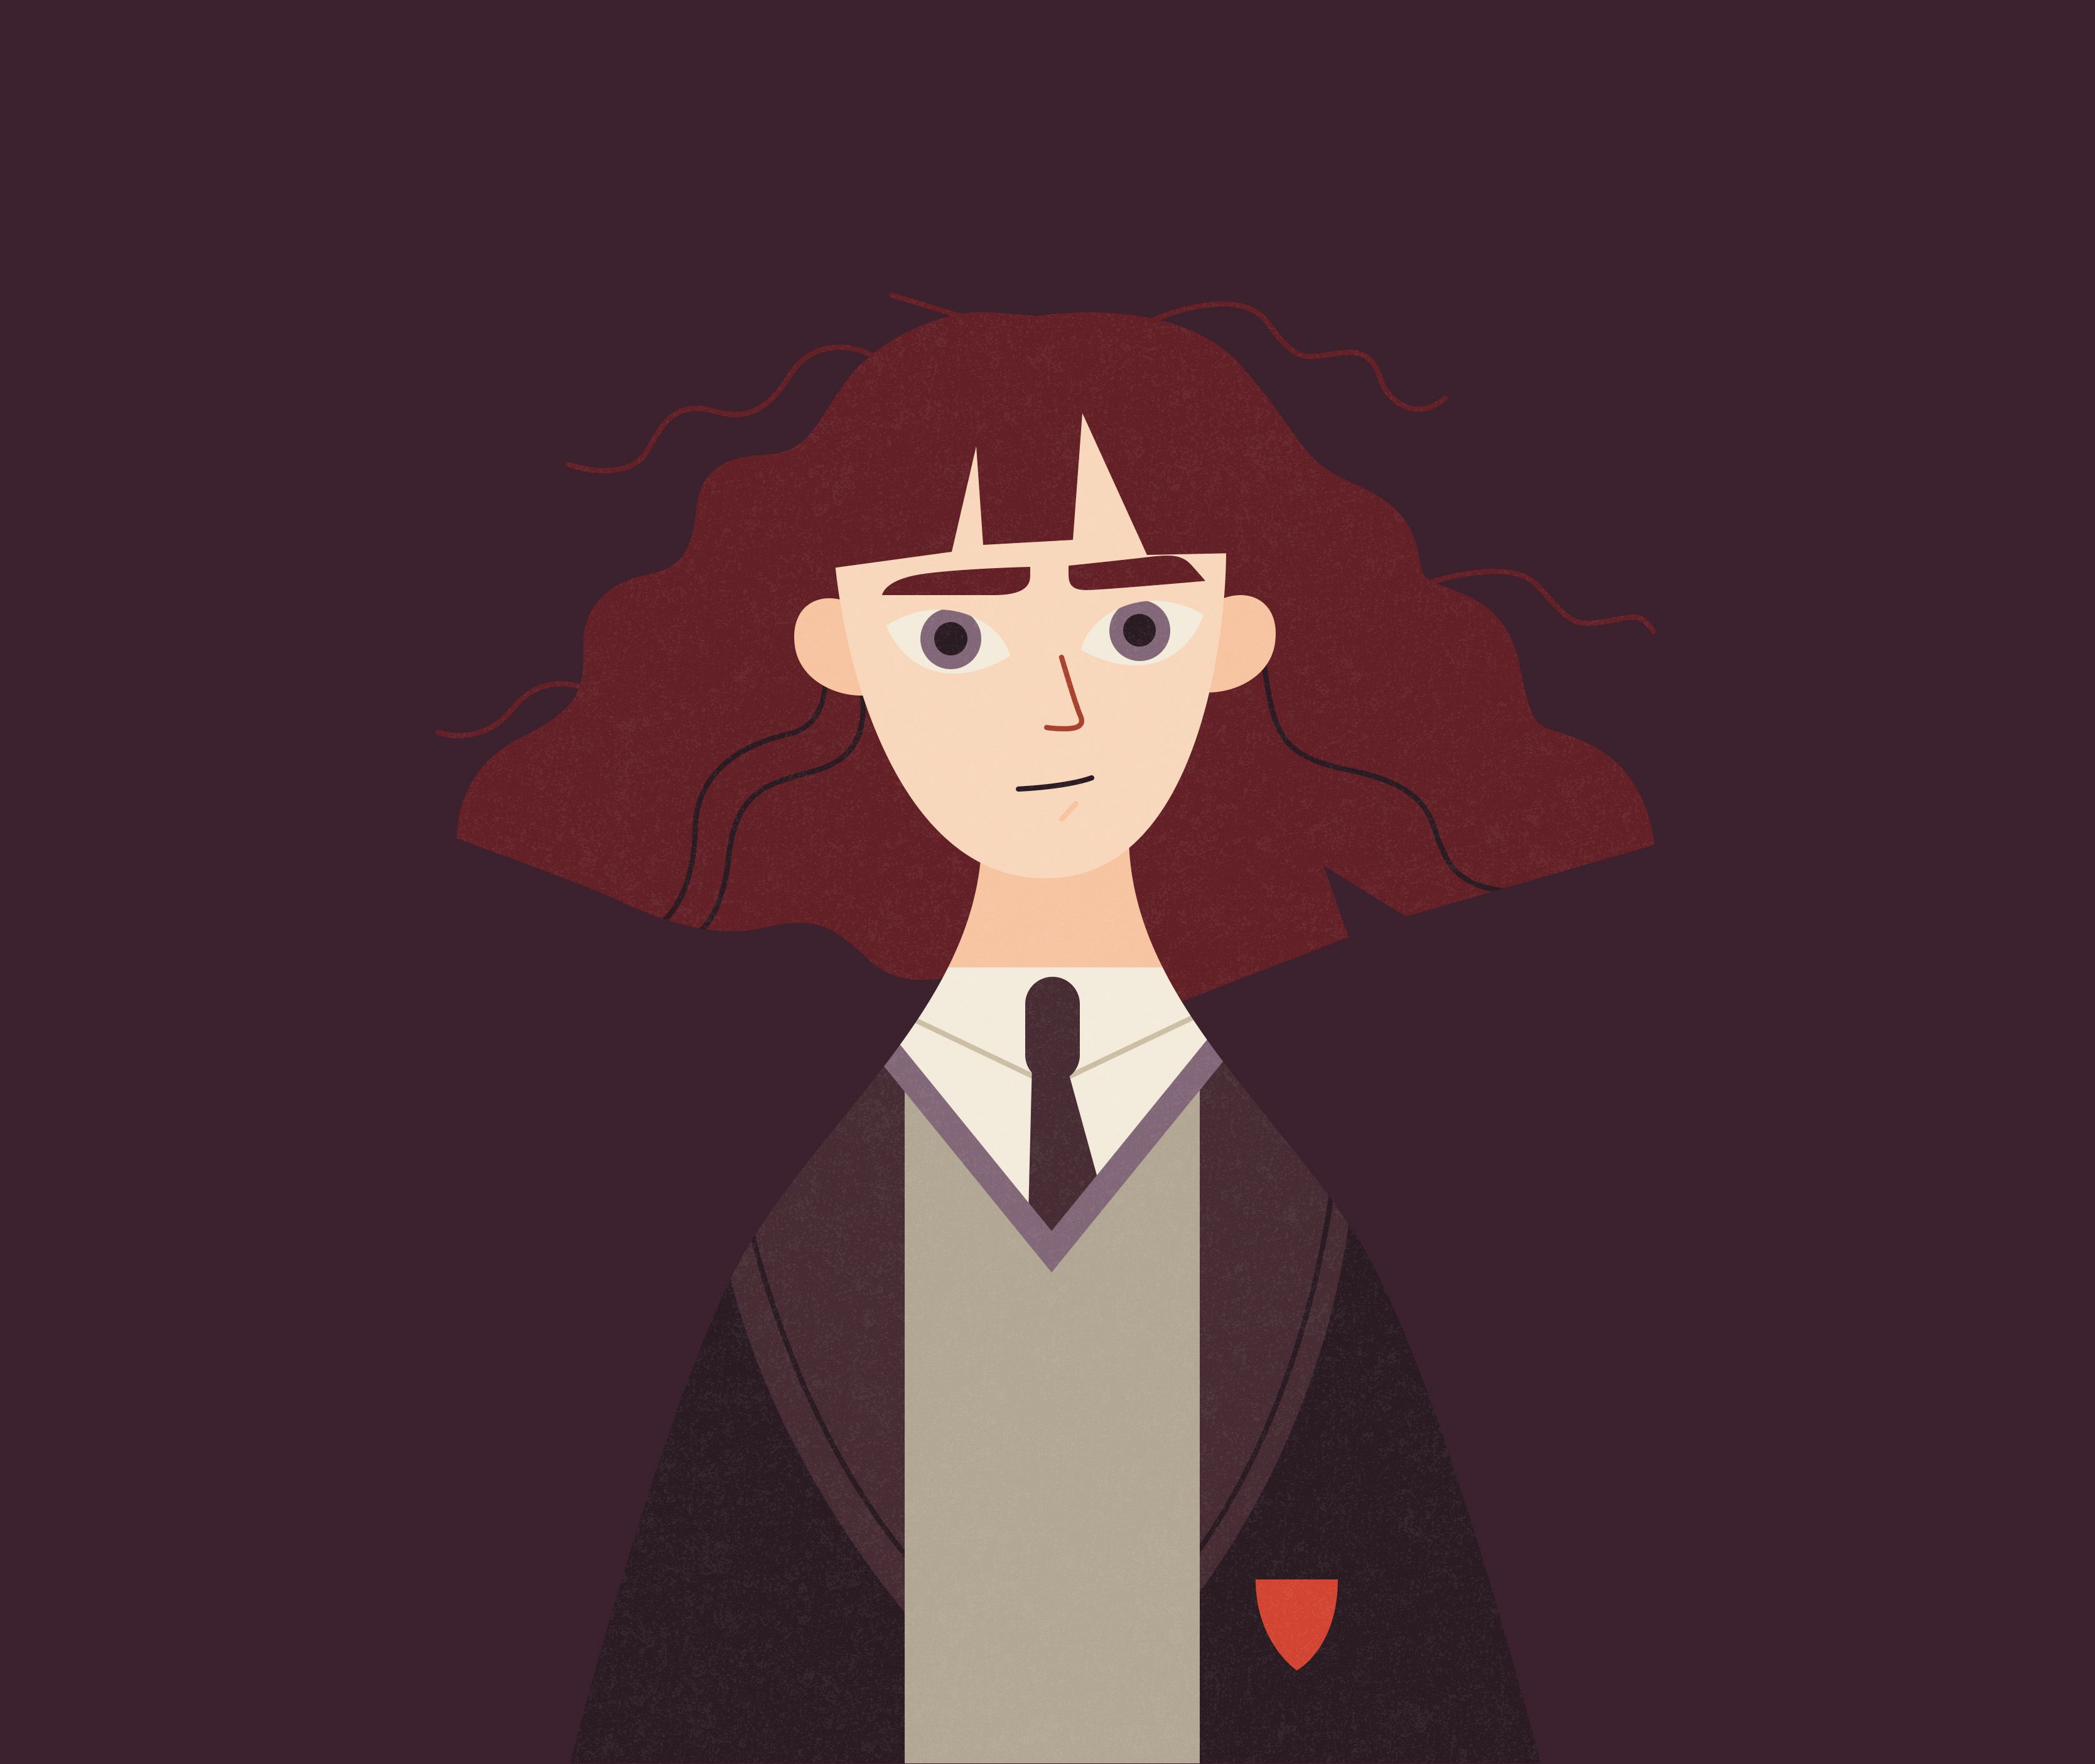 PM Hermione Granger illustration DA infographic